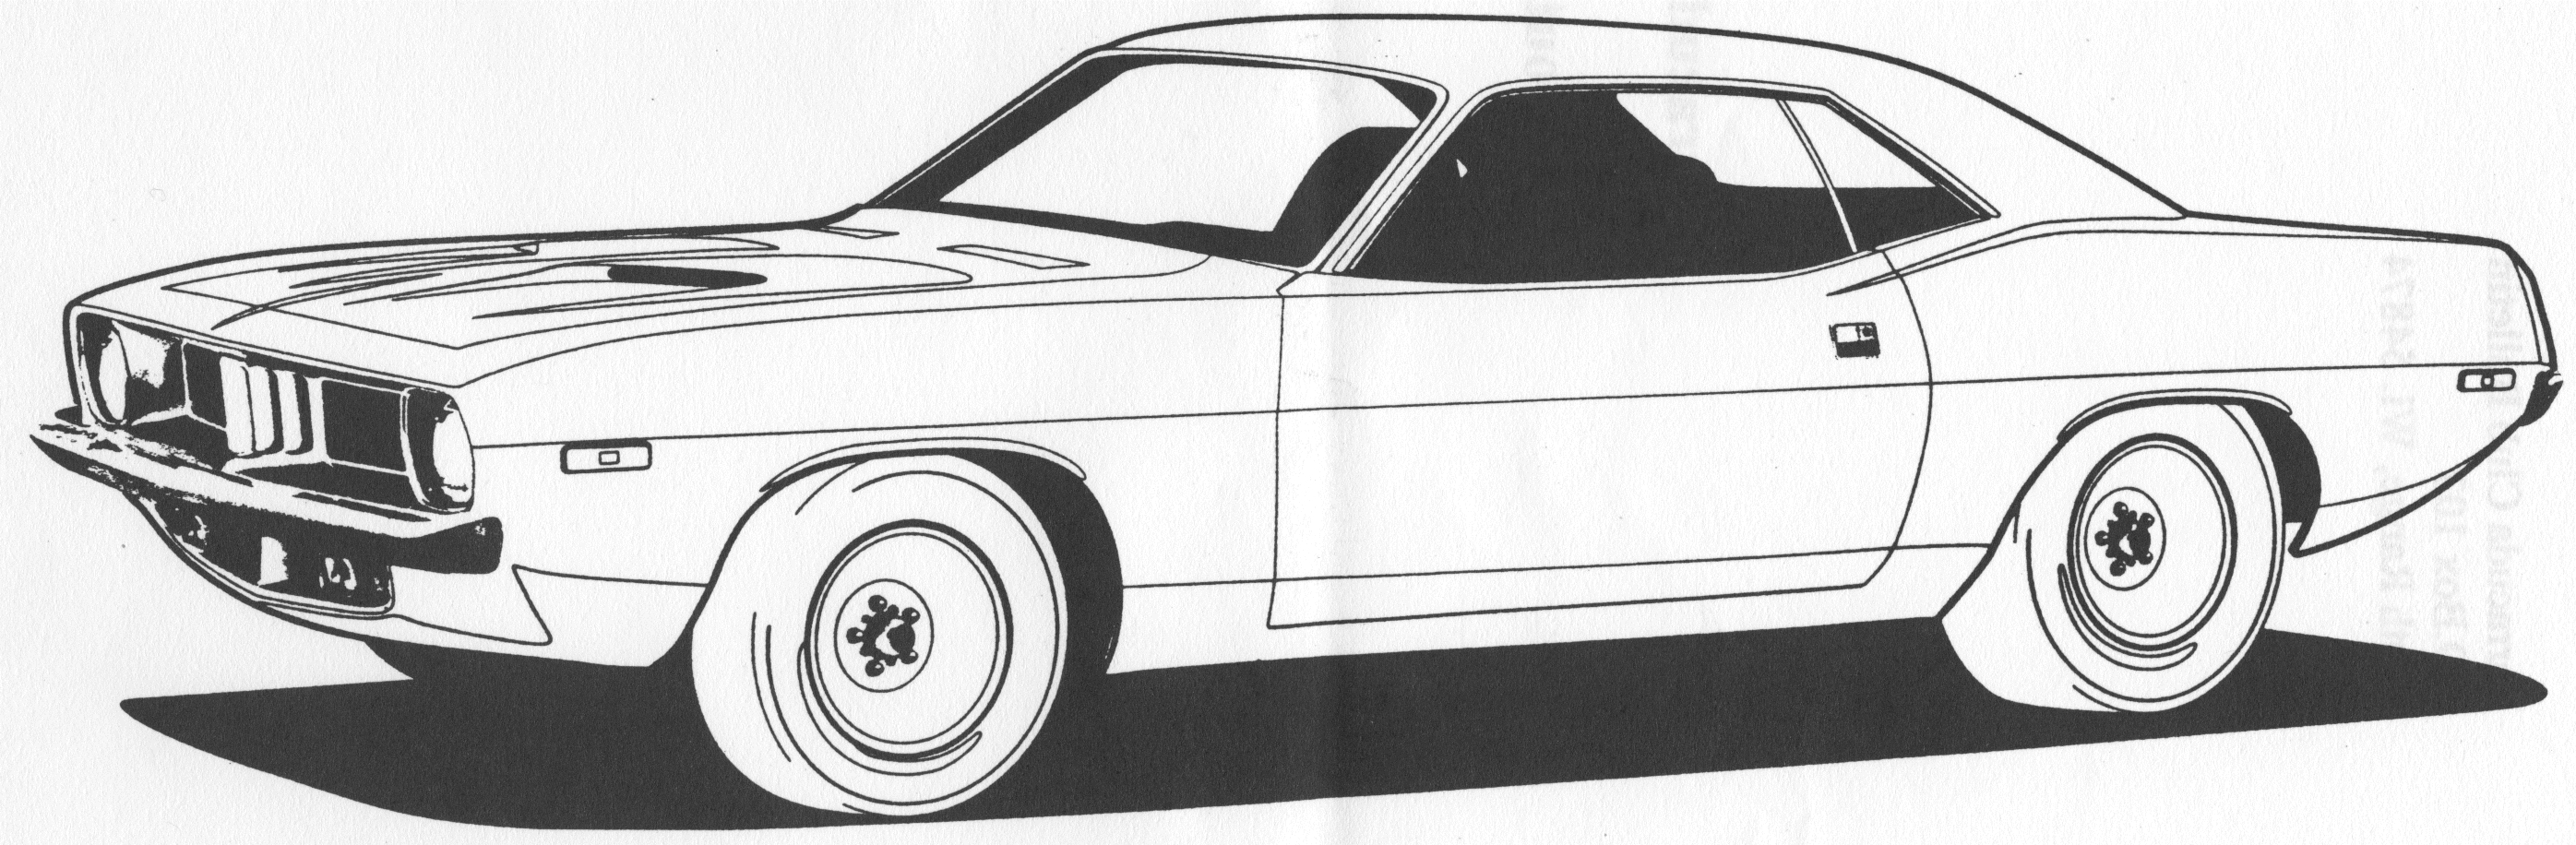 Plymouth Barracuda clipart #1, Download drawings